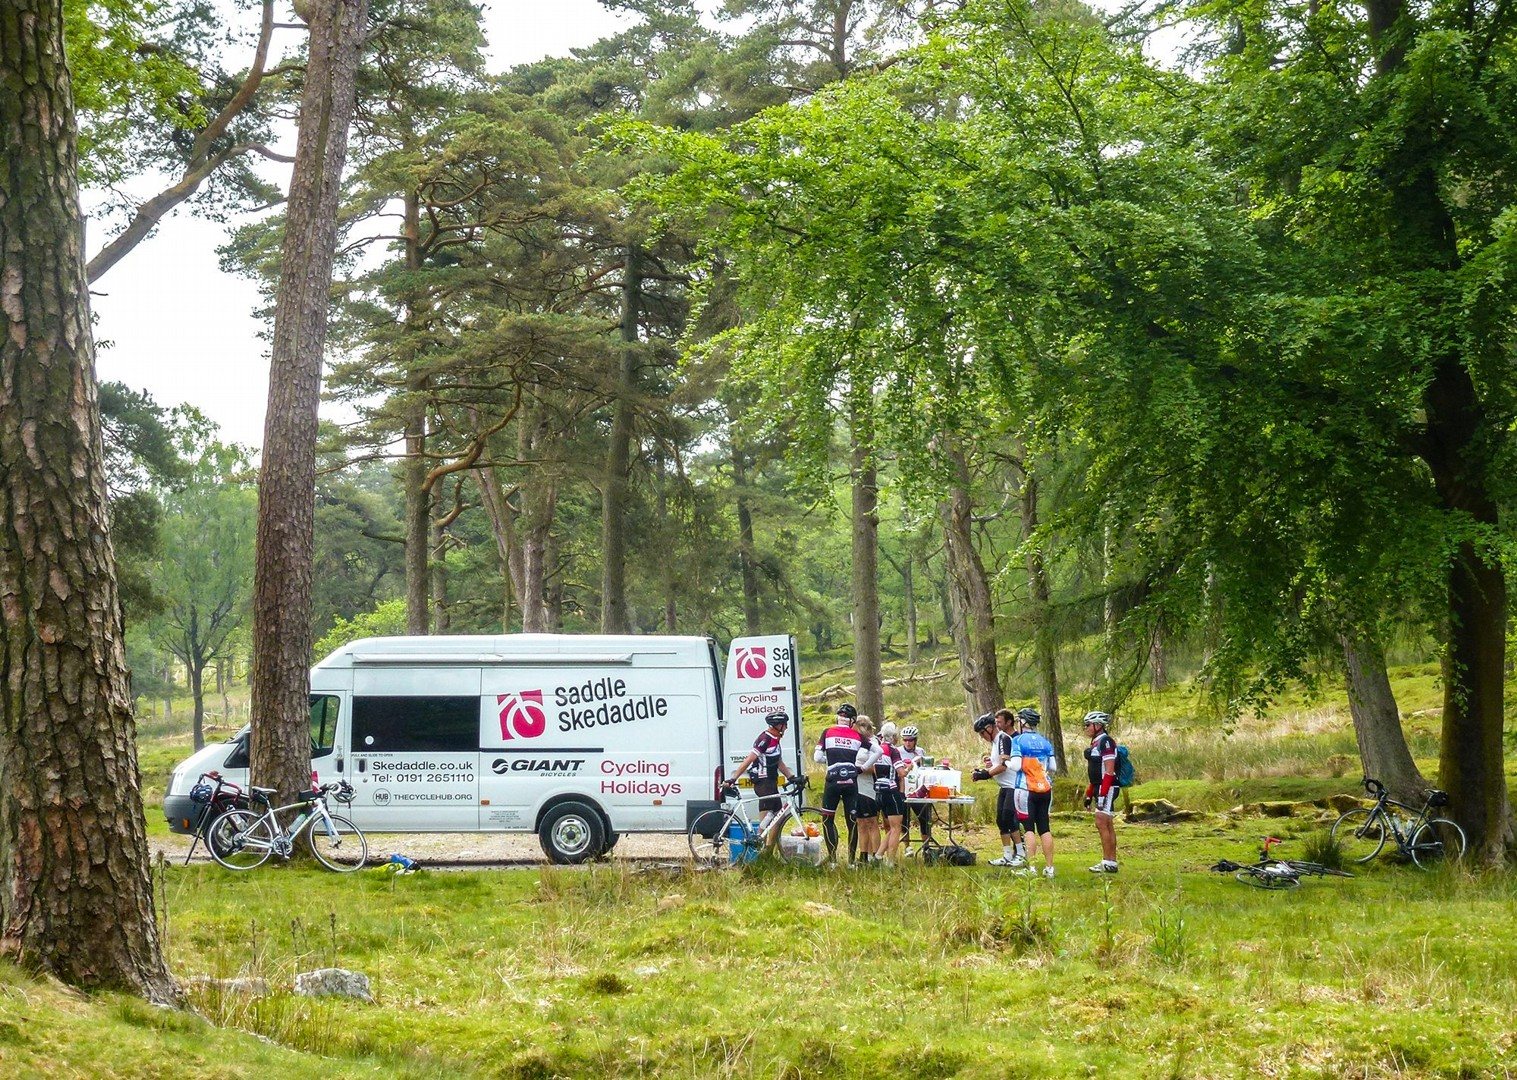 ultimate-road-cycling-holiday-in-the-uk-lejog-saddle-skedaddle-through-britain.jpg - UK - Land's End to John O'Groats Explorer (22 days) - Guided Cycling Holiday - Leisure Cycling